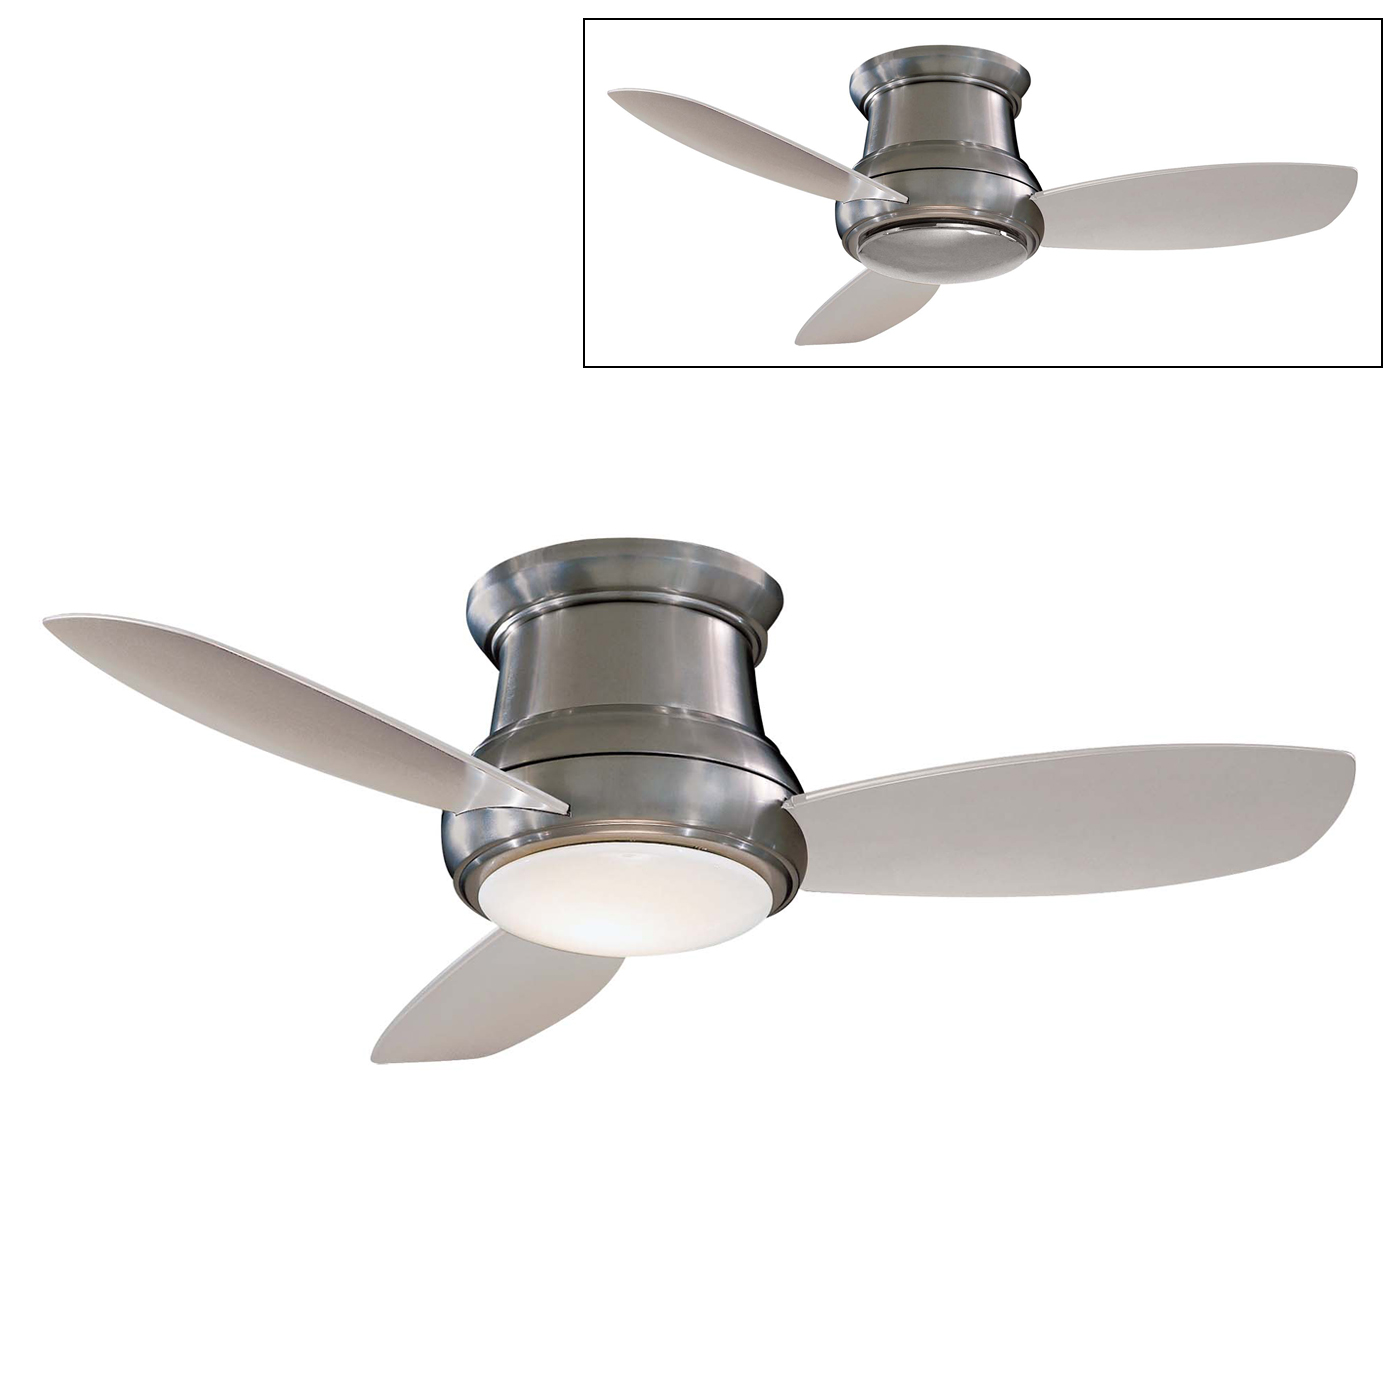 Popular 183 List small modern ceiling fan with light